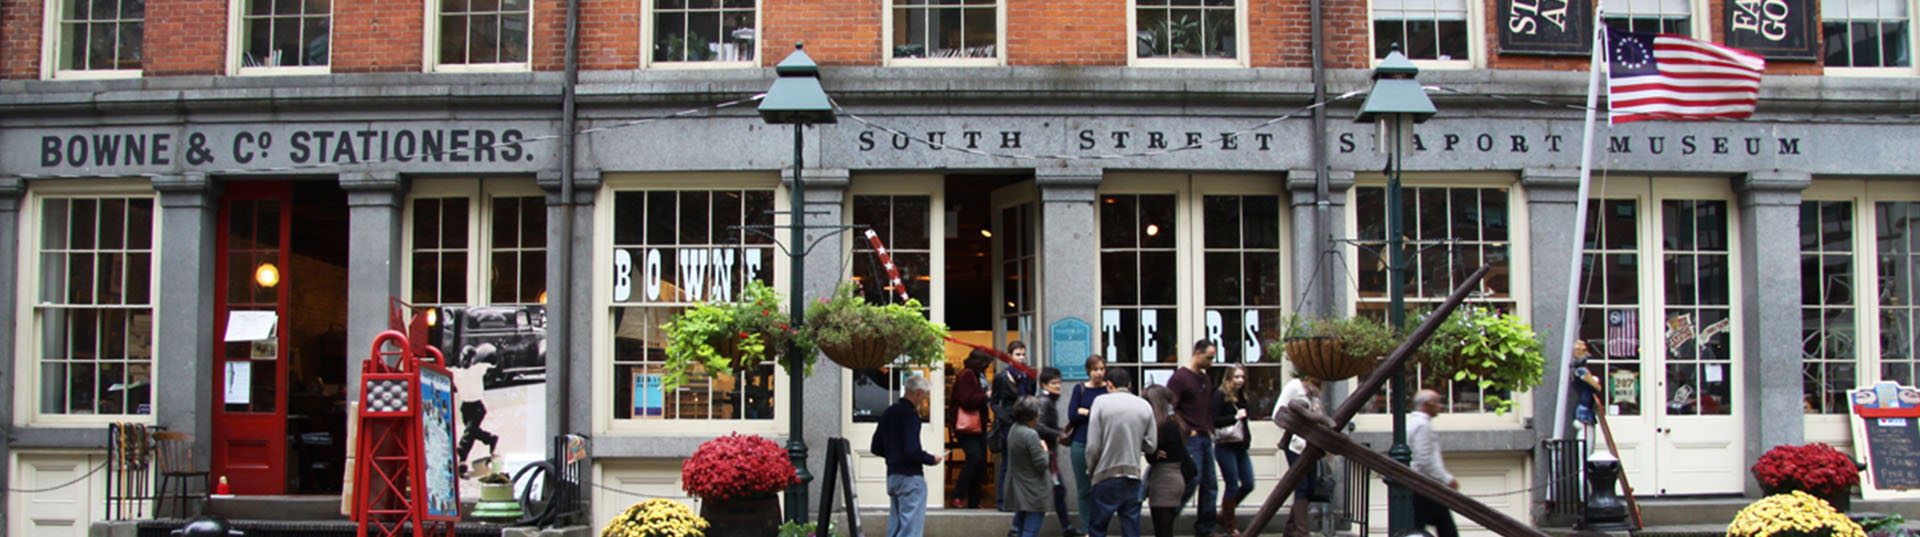 South Street Seaport Museum Events New York City